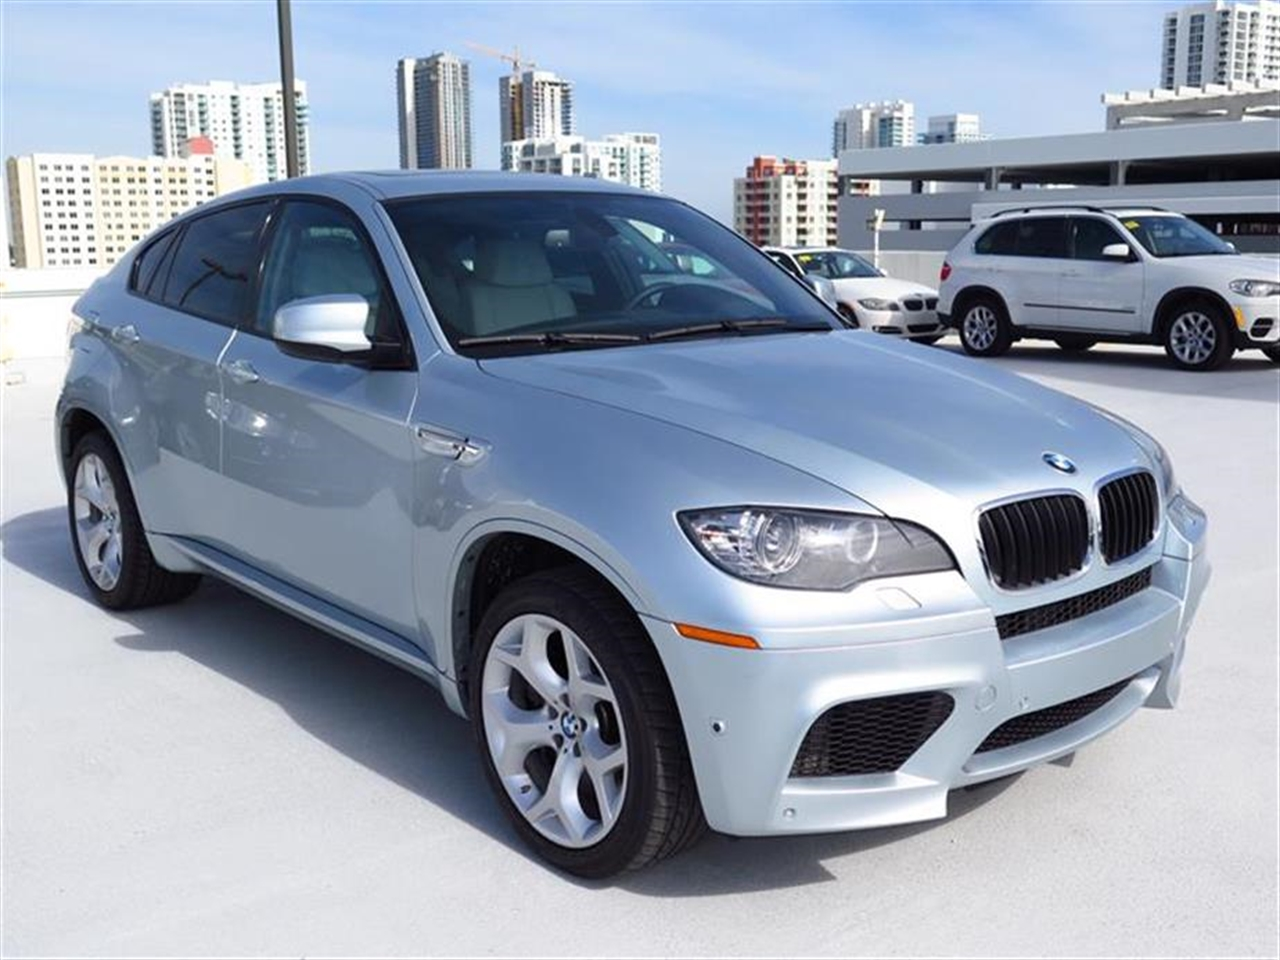 2012 BMW X6 M AWD 4dr 24168 miles 14-way pwr-adjustable driver  front passenger M sport seats -in